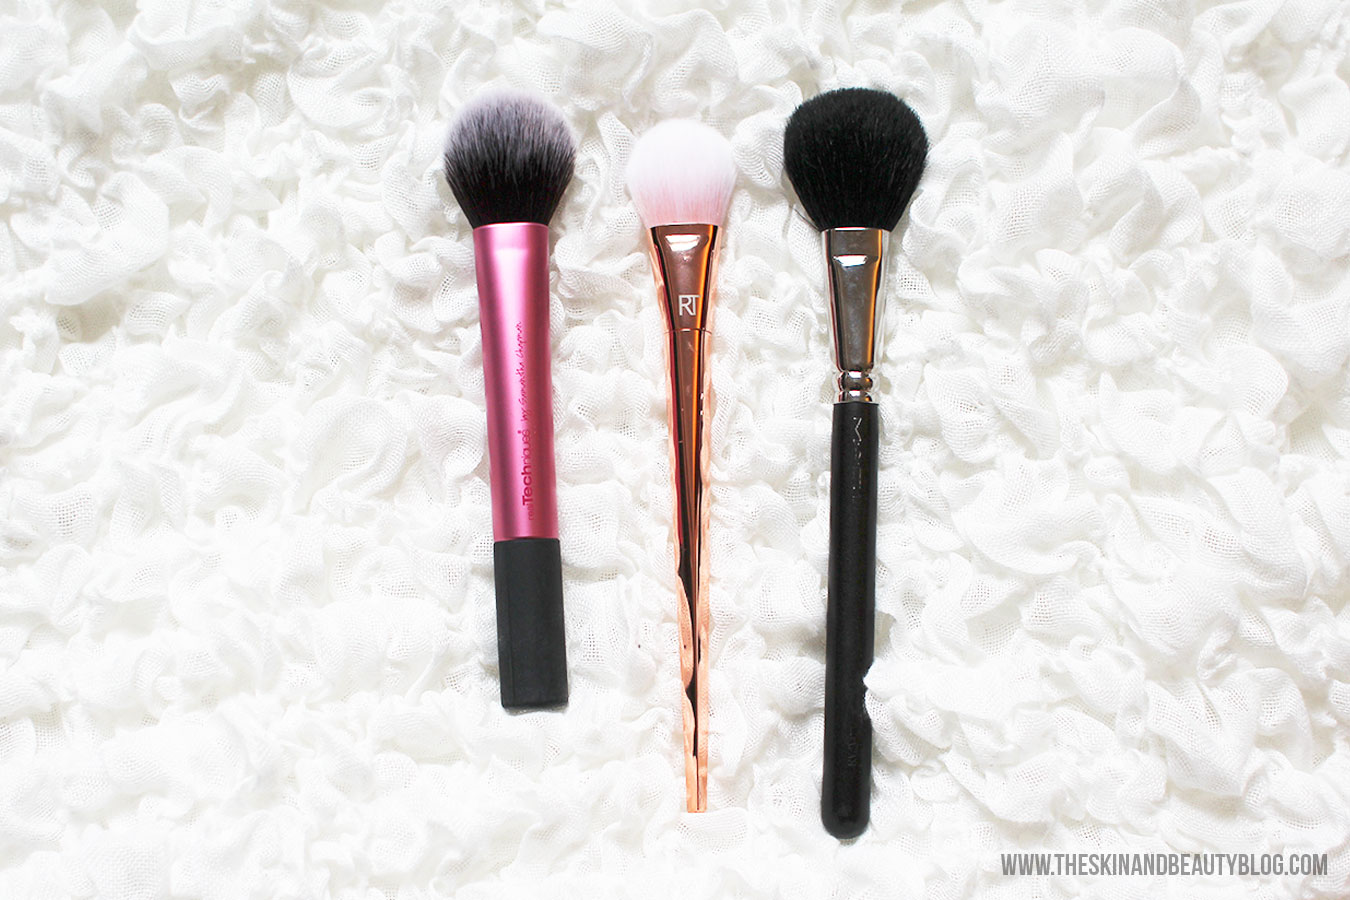 The Real Techniques Brushes Bold Metals 300 Tapered Blush Brush has super soft yet firm synthetic bristles. It is flat on both sides with a domed tapered ...